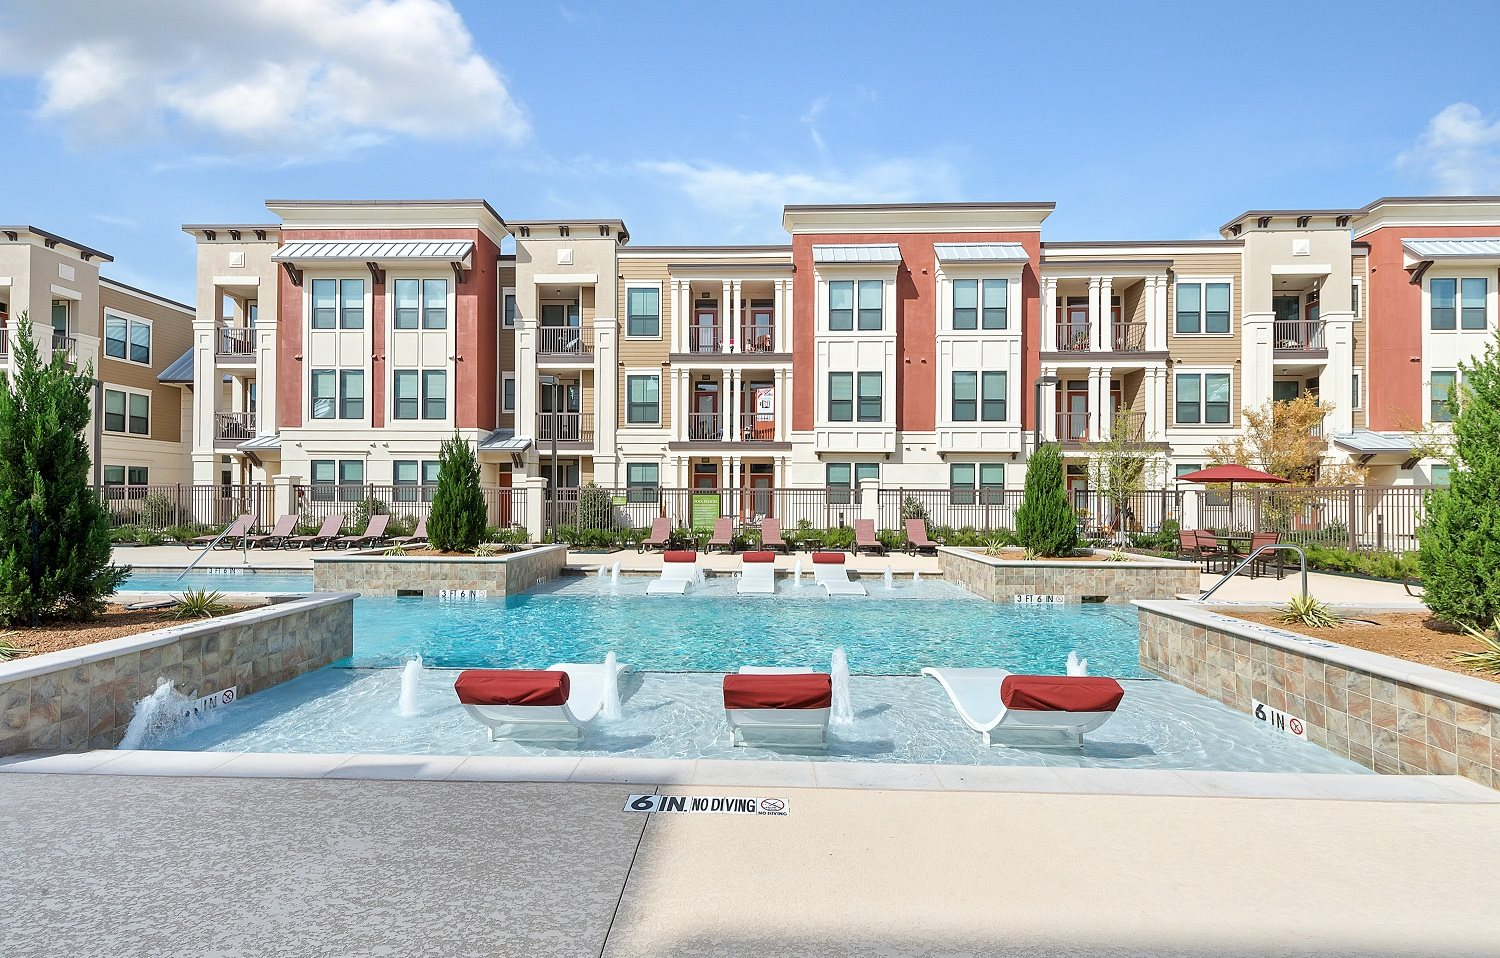 Dolce Living Home Town Apartments for rent in North Richland Hills, TX 76180 Pool